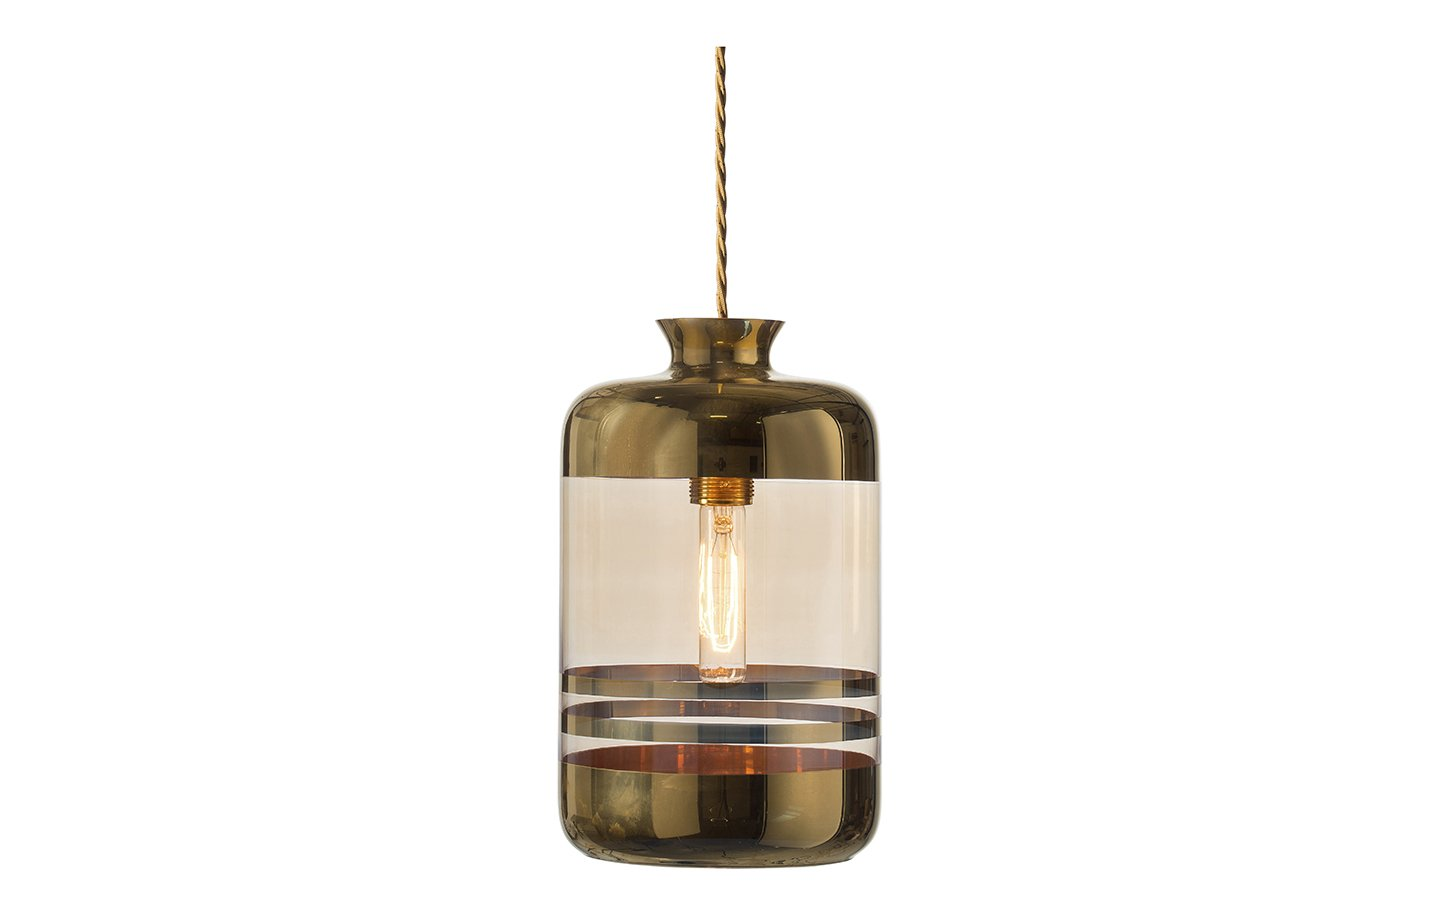 Pillar pendant stripes lamp – Gold